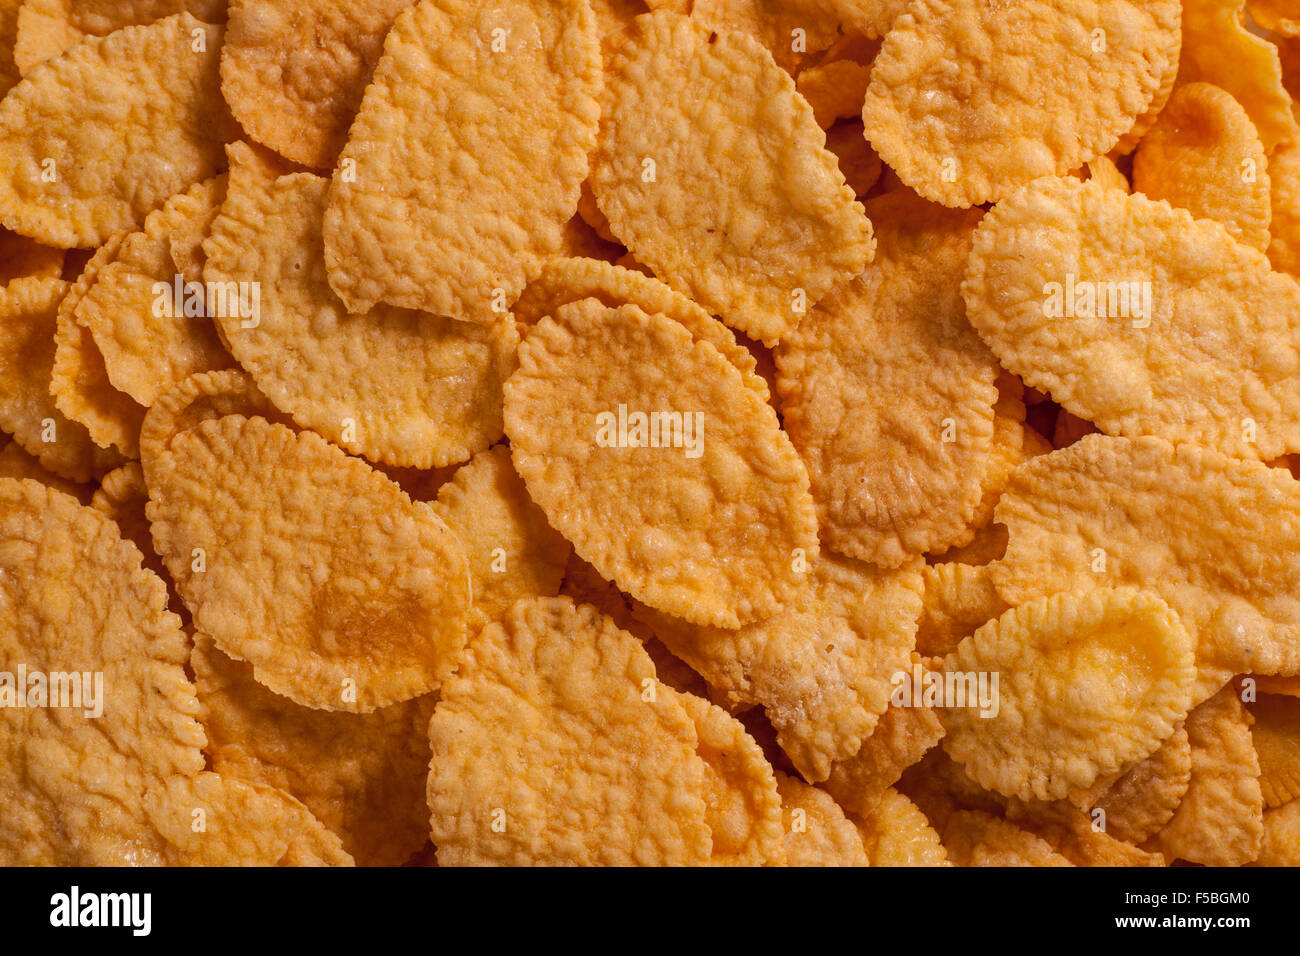 Food background made of many corn flakes - Stock Image